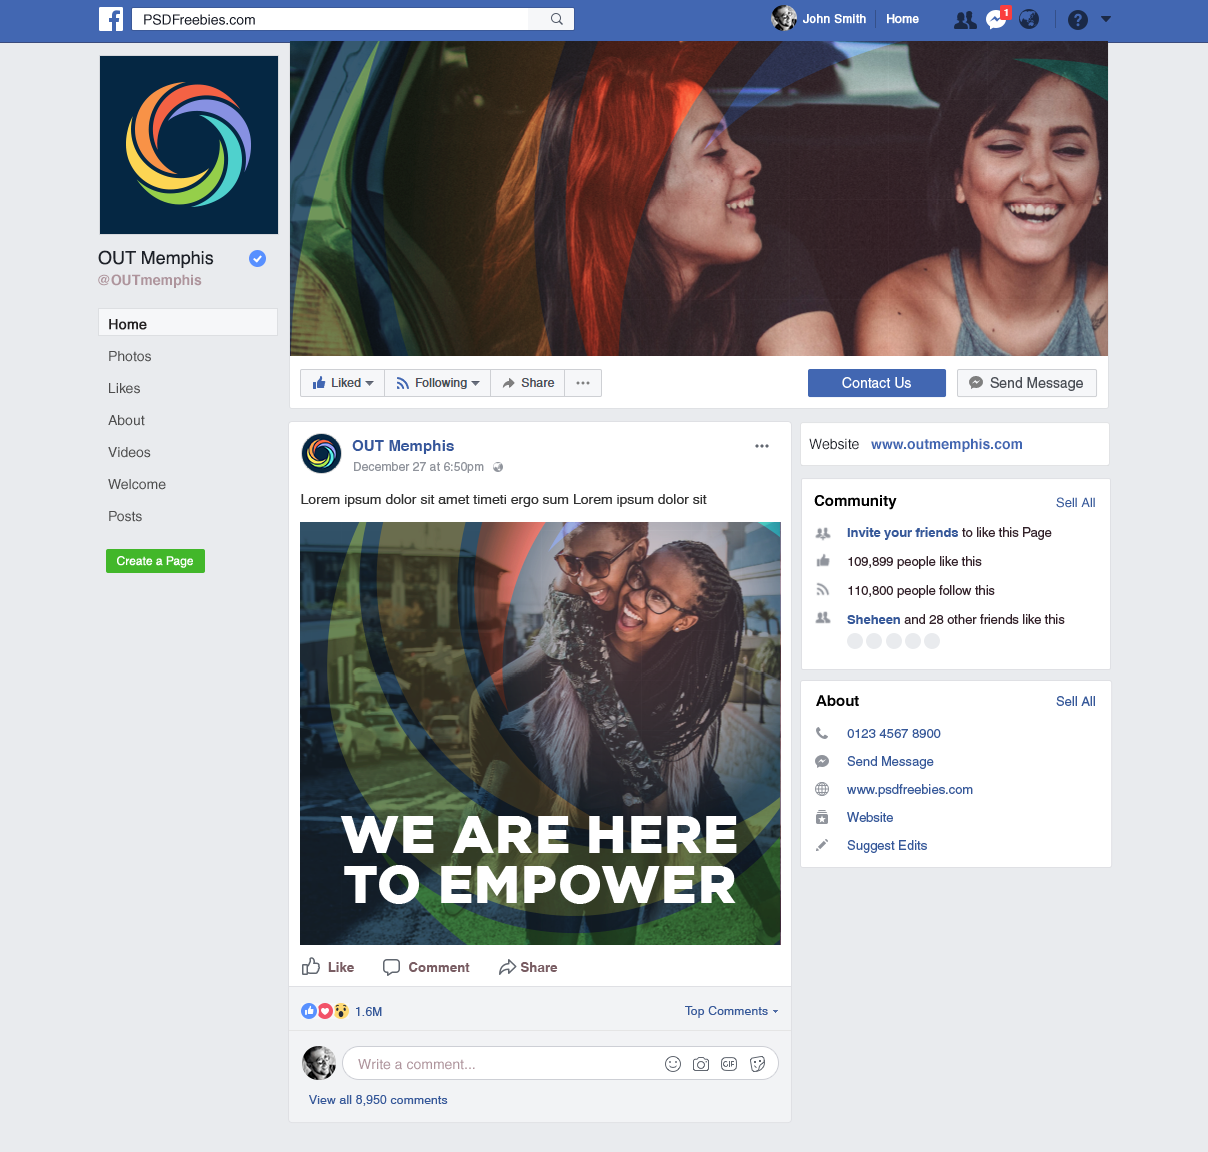 OUTmemphis social media campaign with digital assets